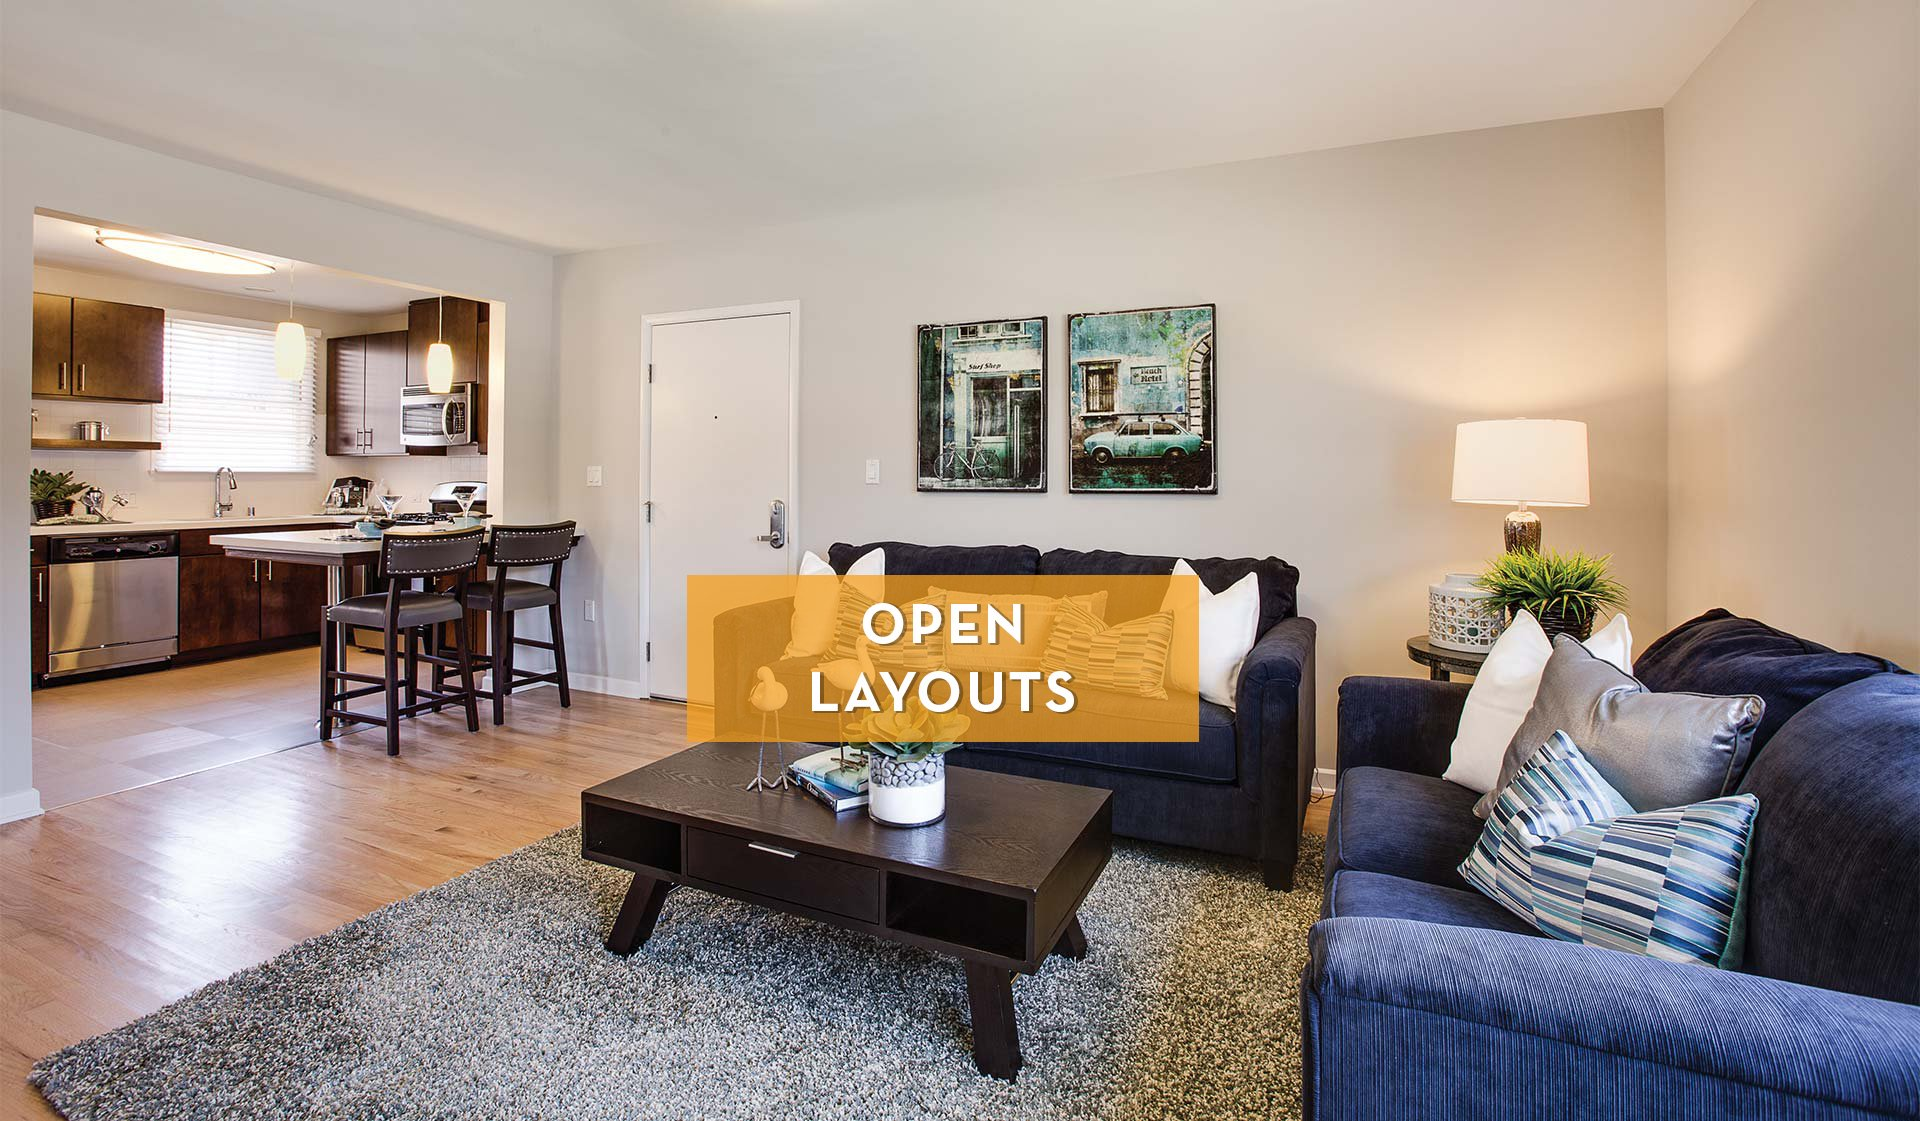 Lincoln Place Apartment Homes - Open Layout - Venice, CA